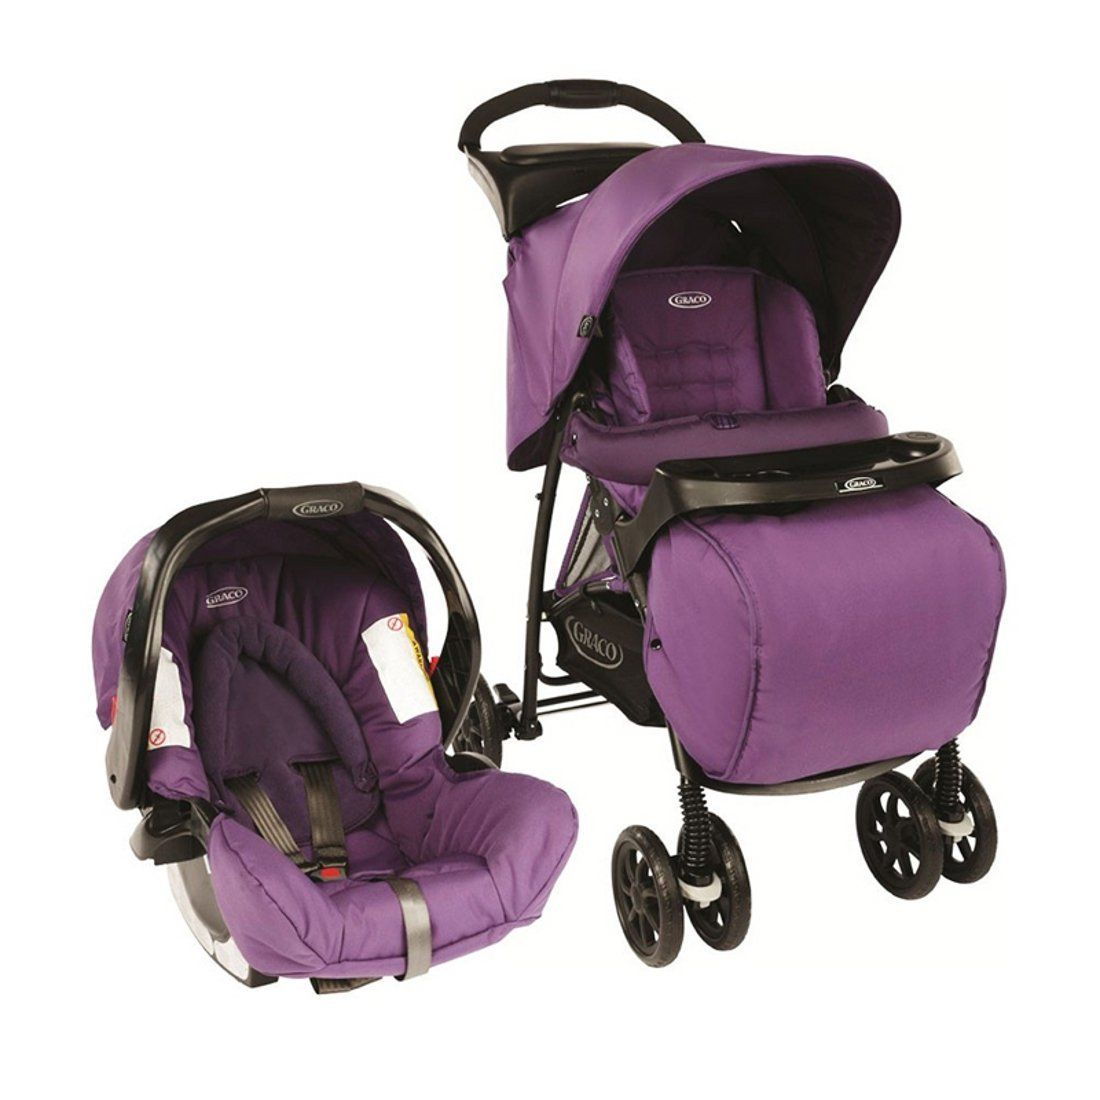 Small Crop Of Graco Travel System